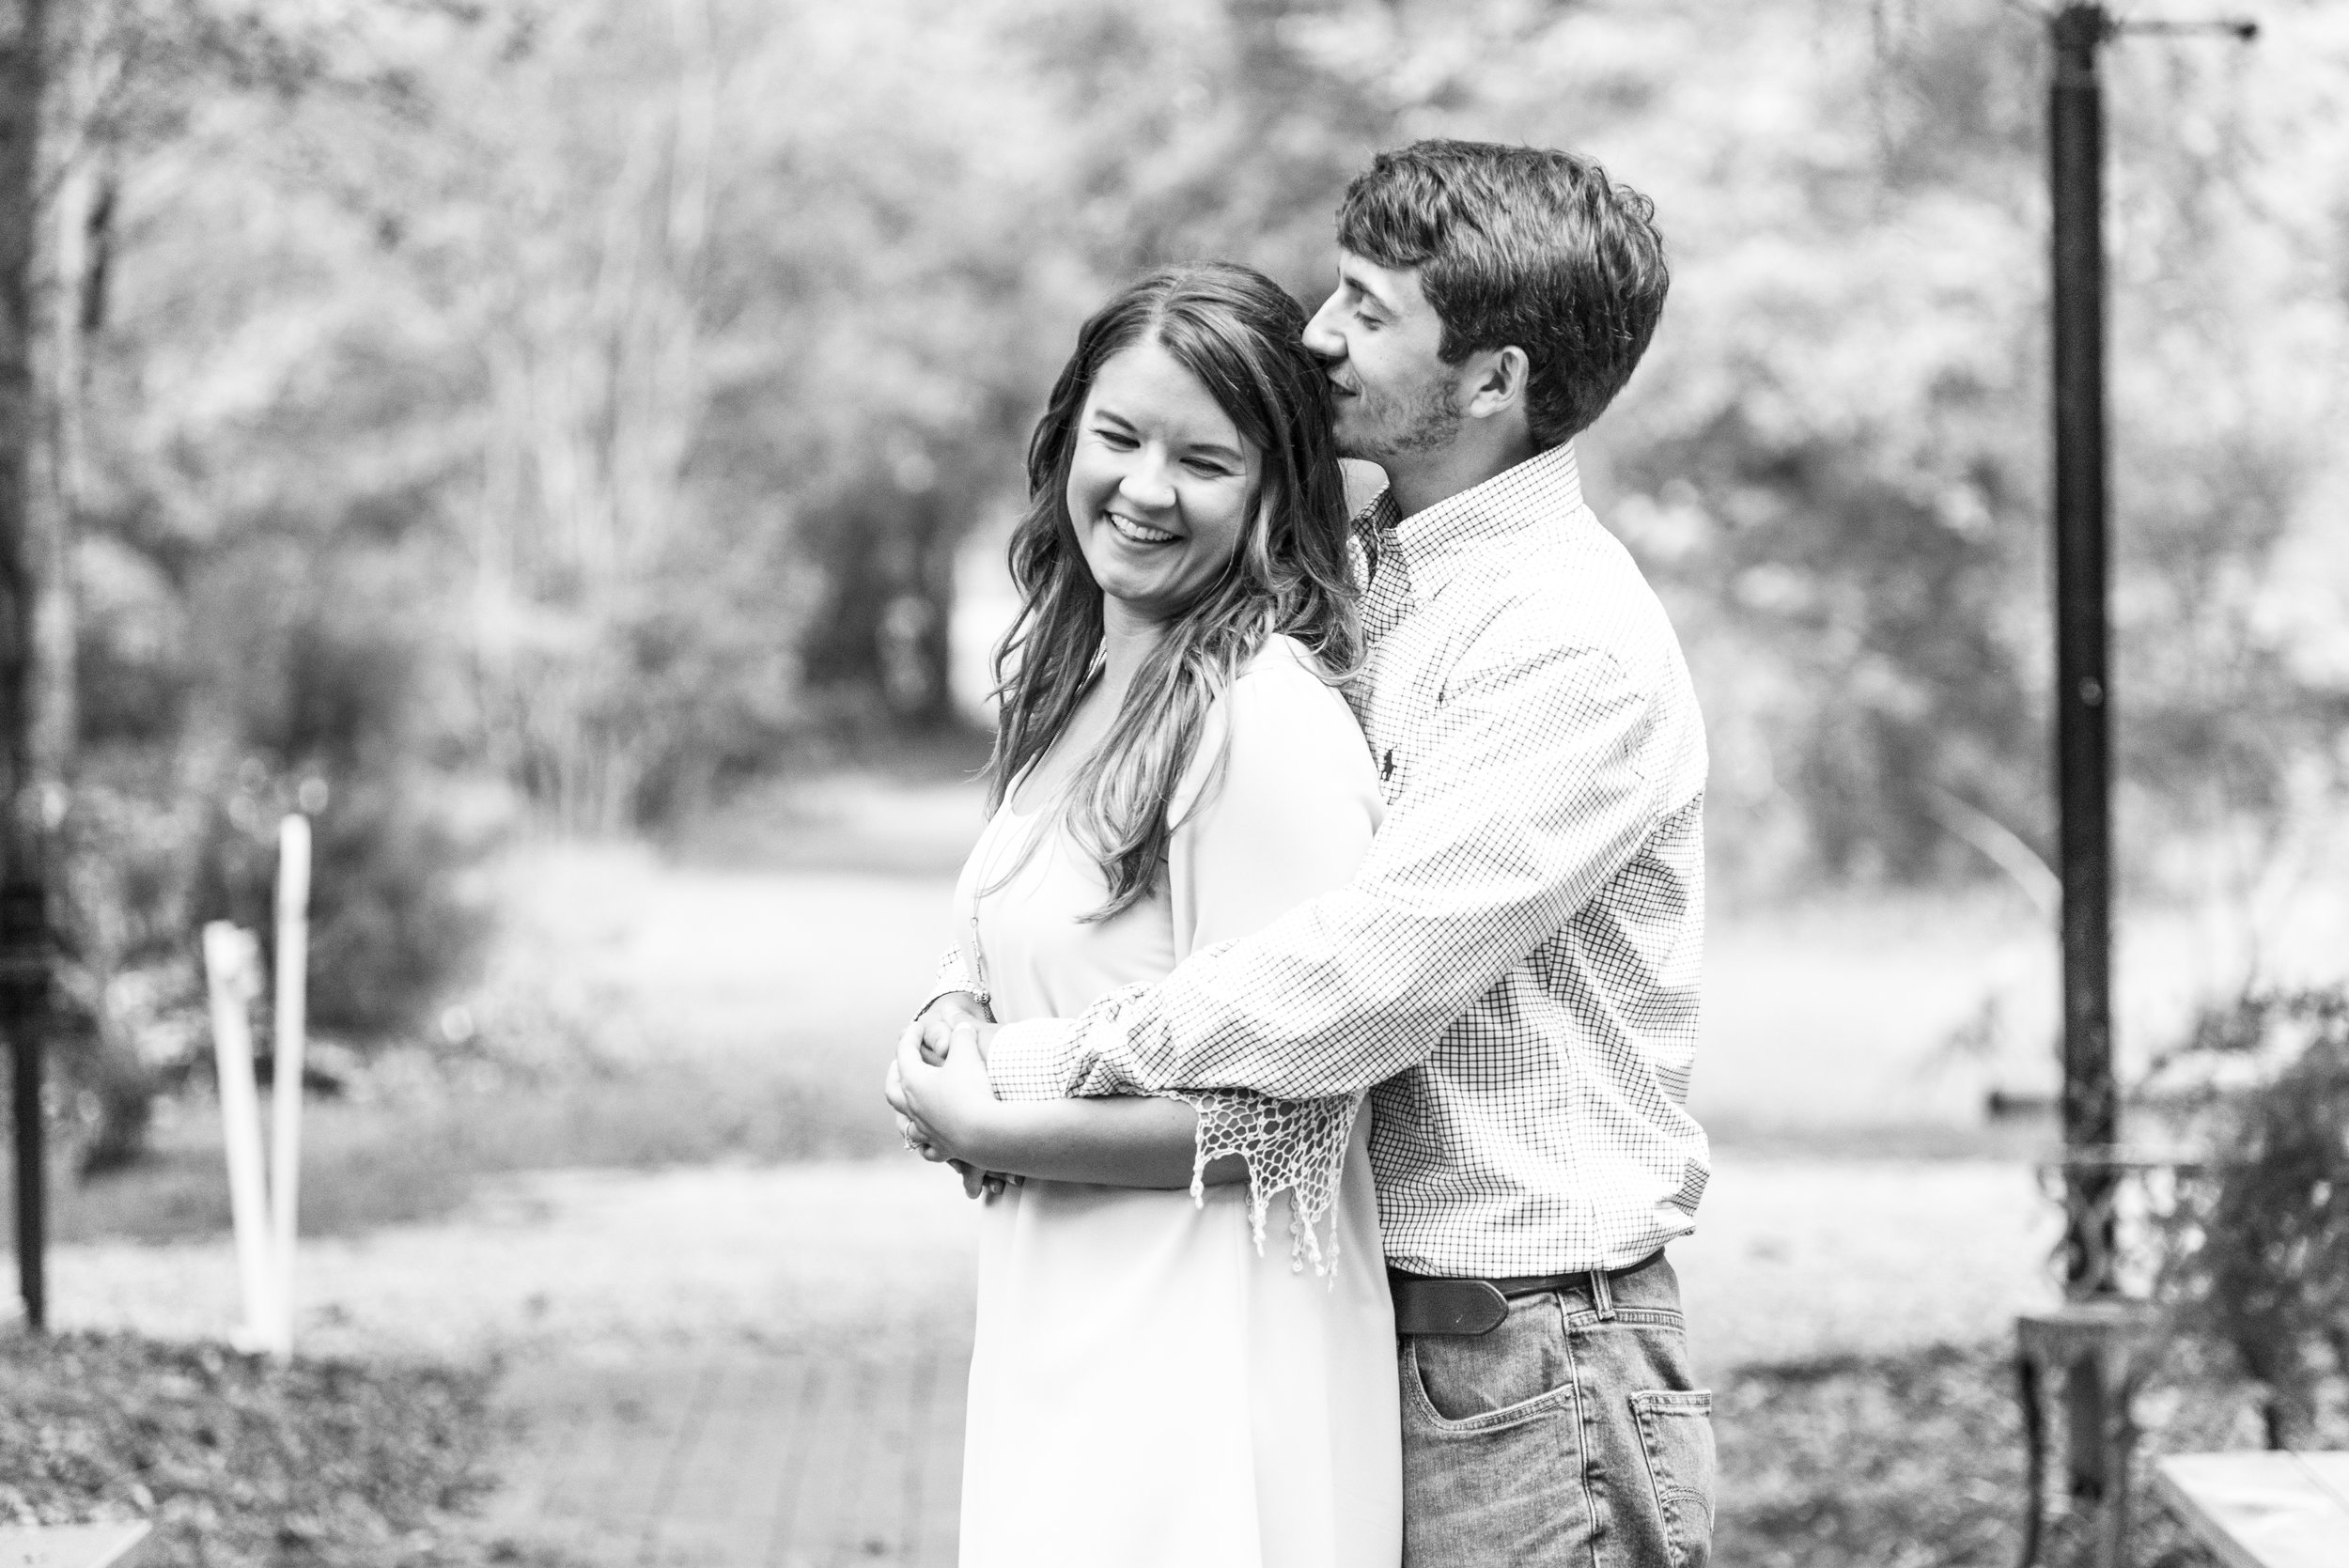 Callie & JT | Engaged-54.jpg